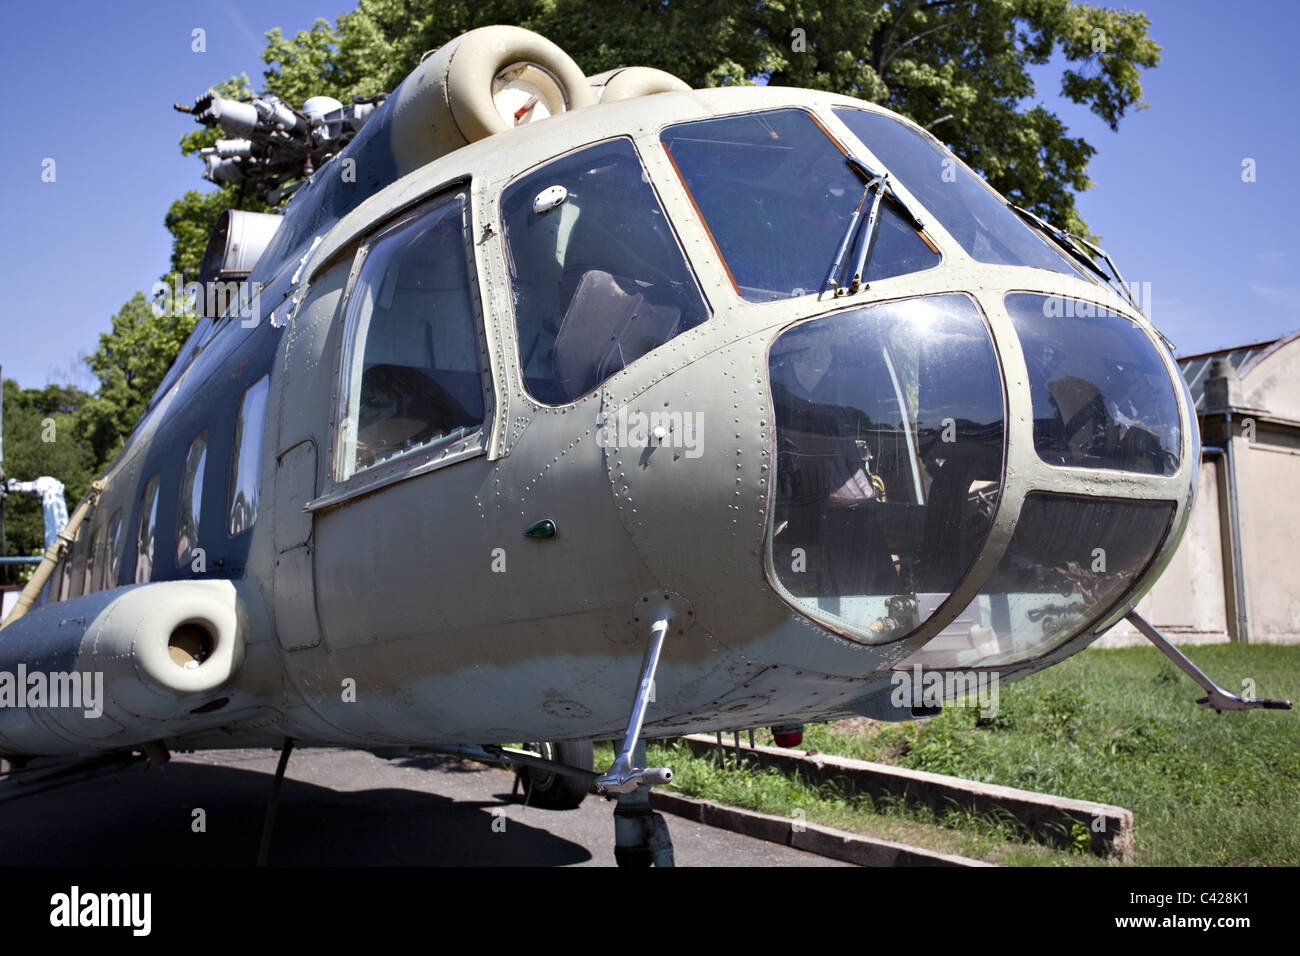 Russian military helicopter on ground - Stock Image